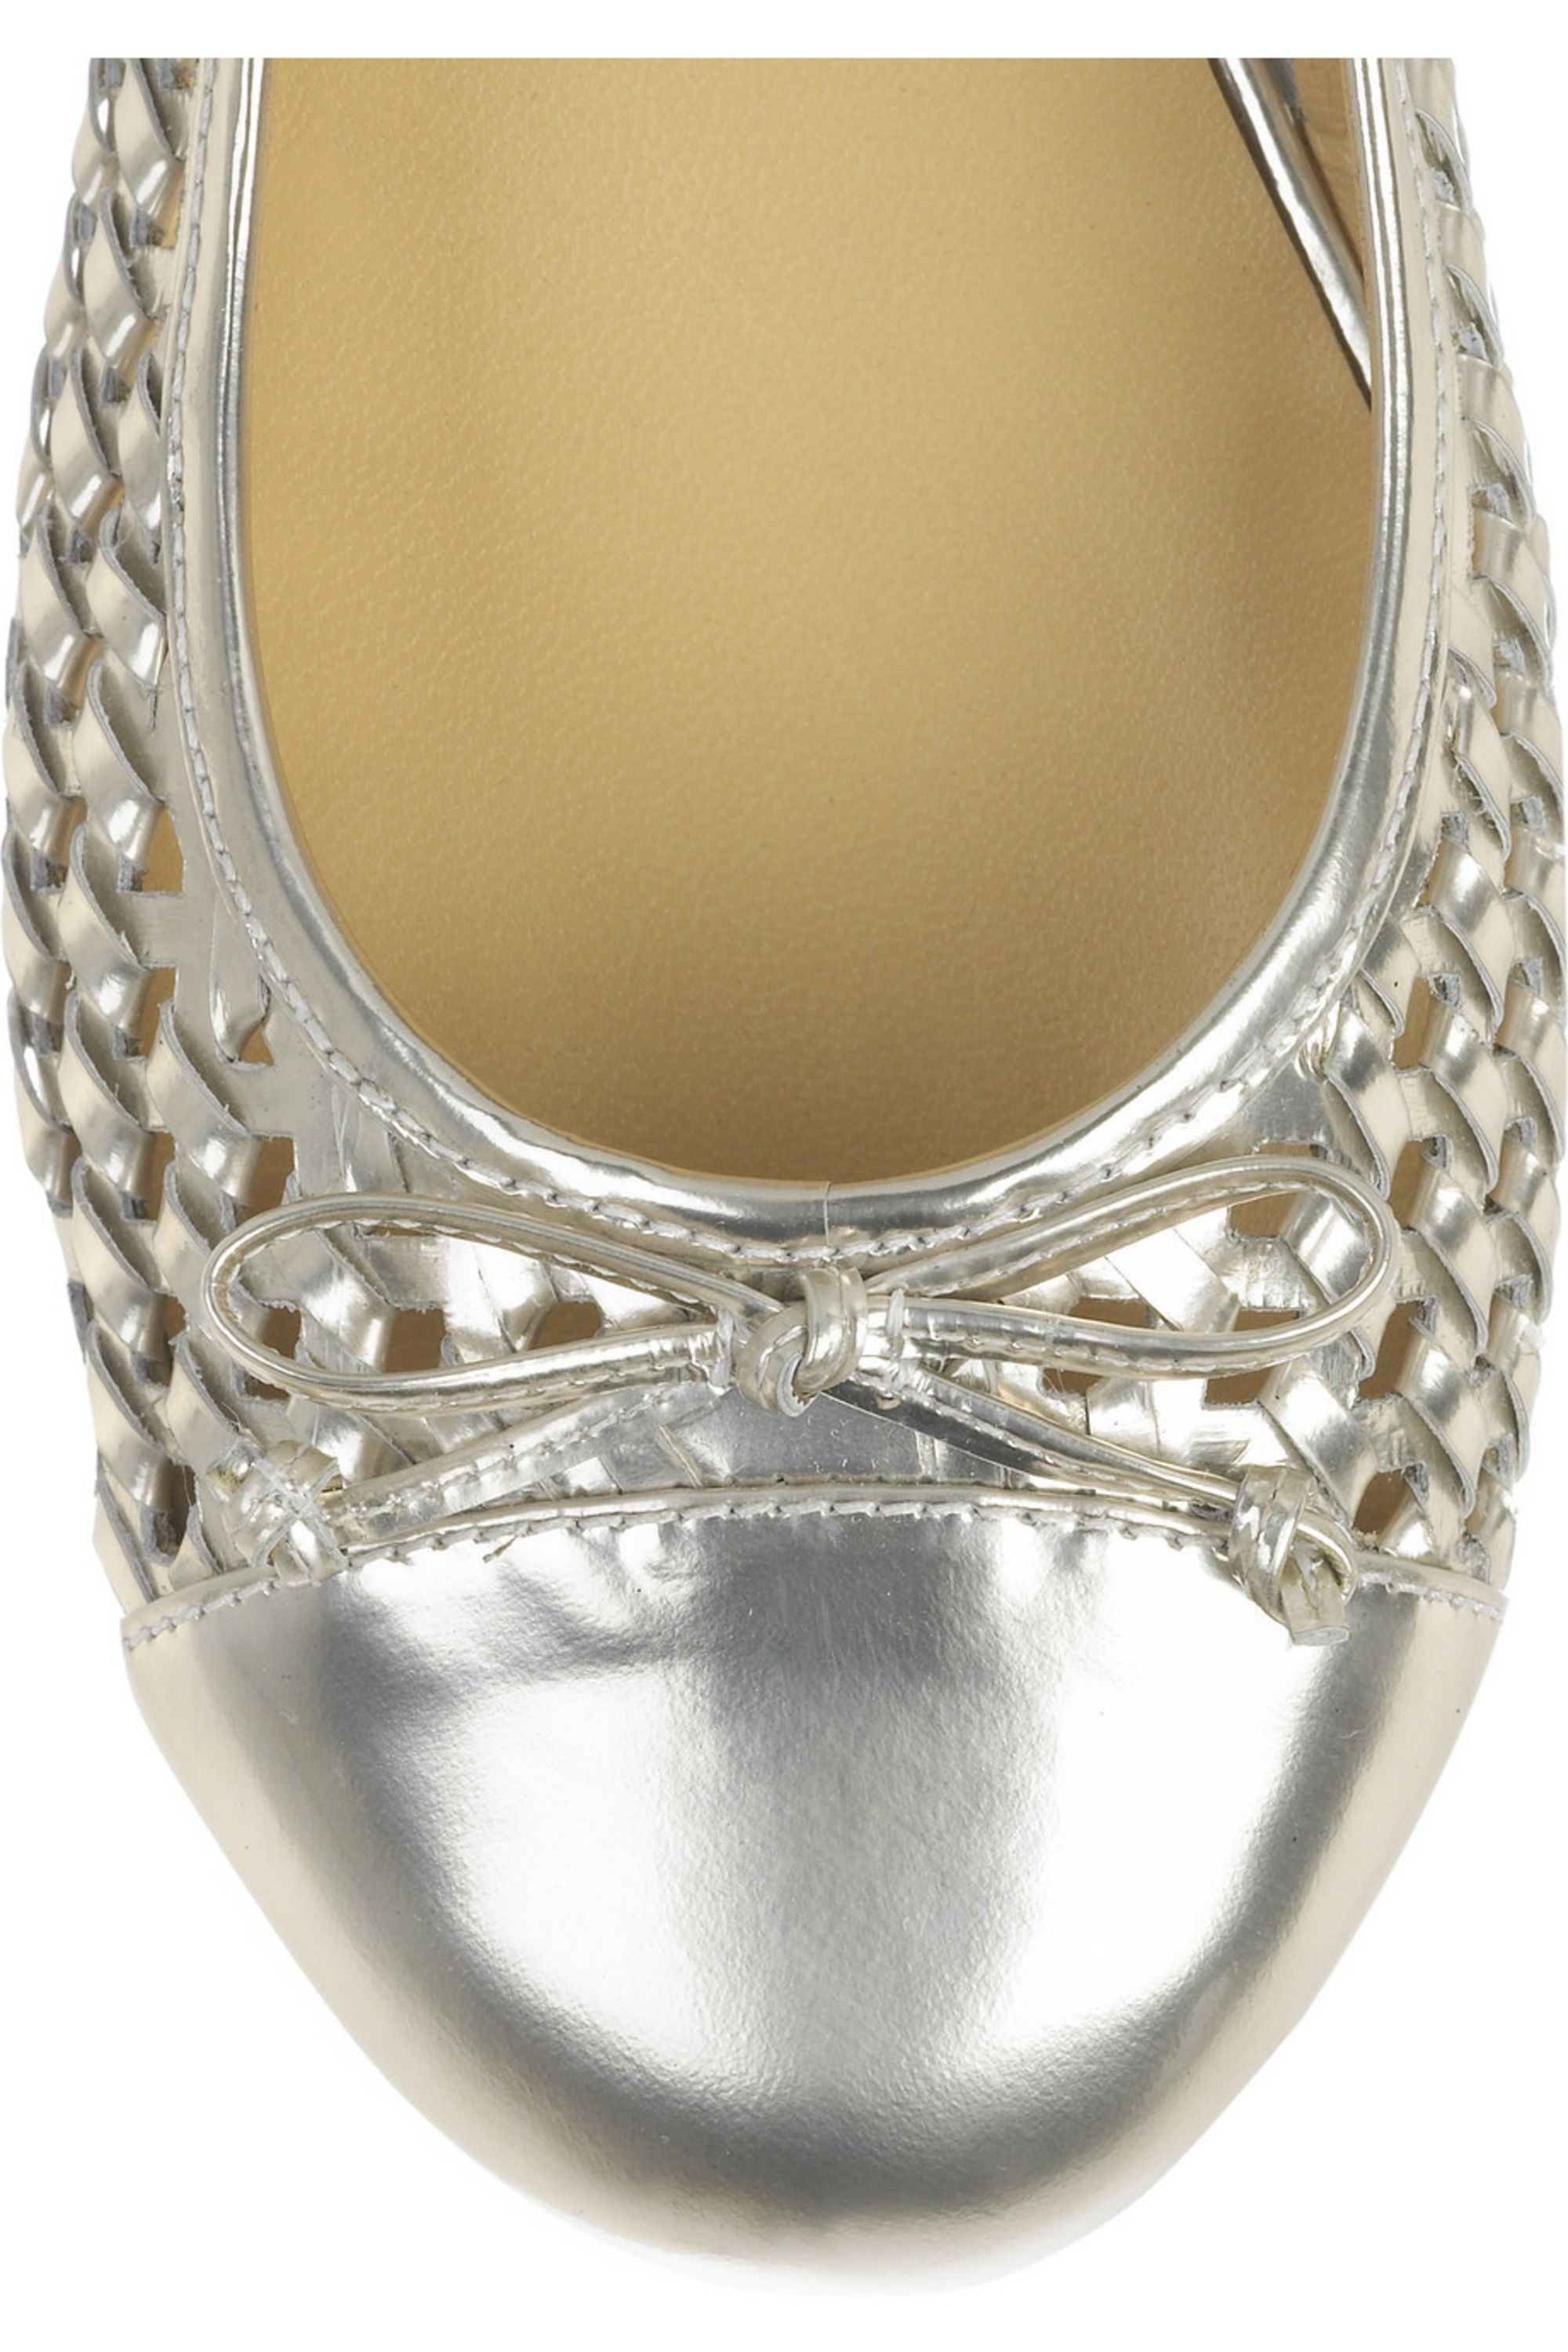 Marc by Marc Jacobs Woven leather ballet flats